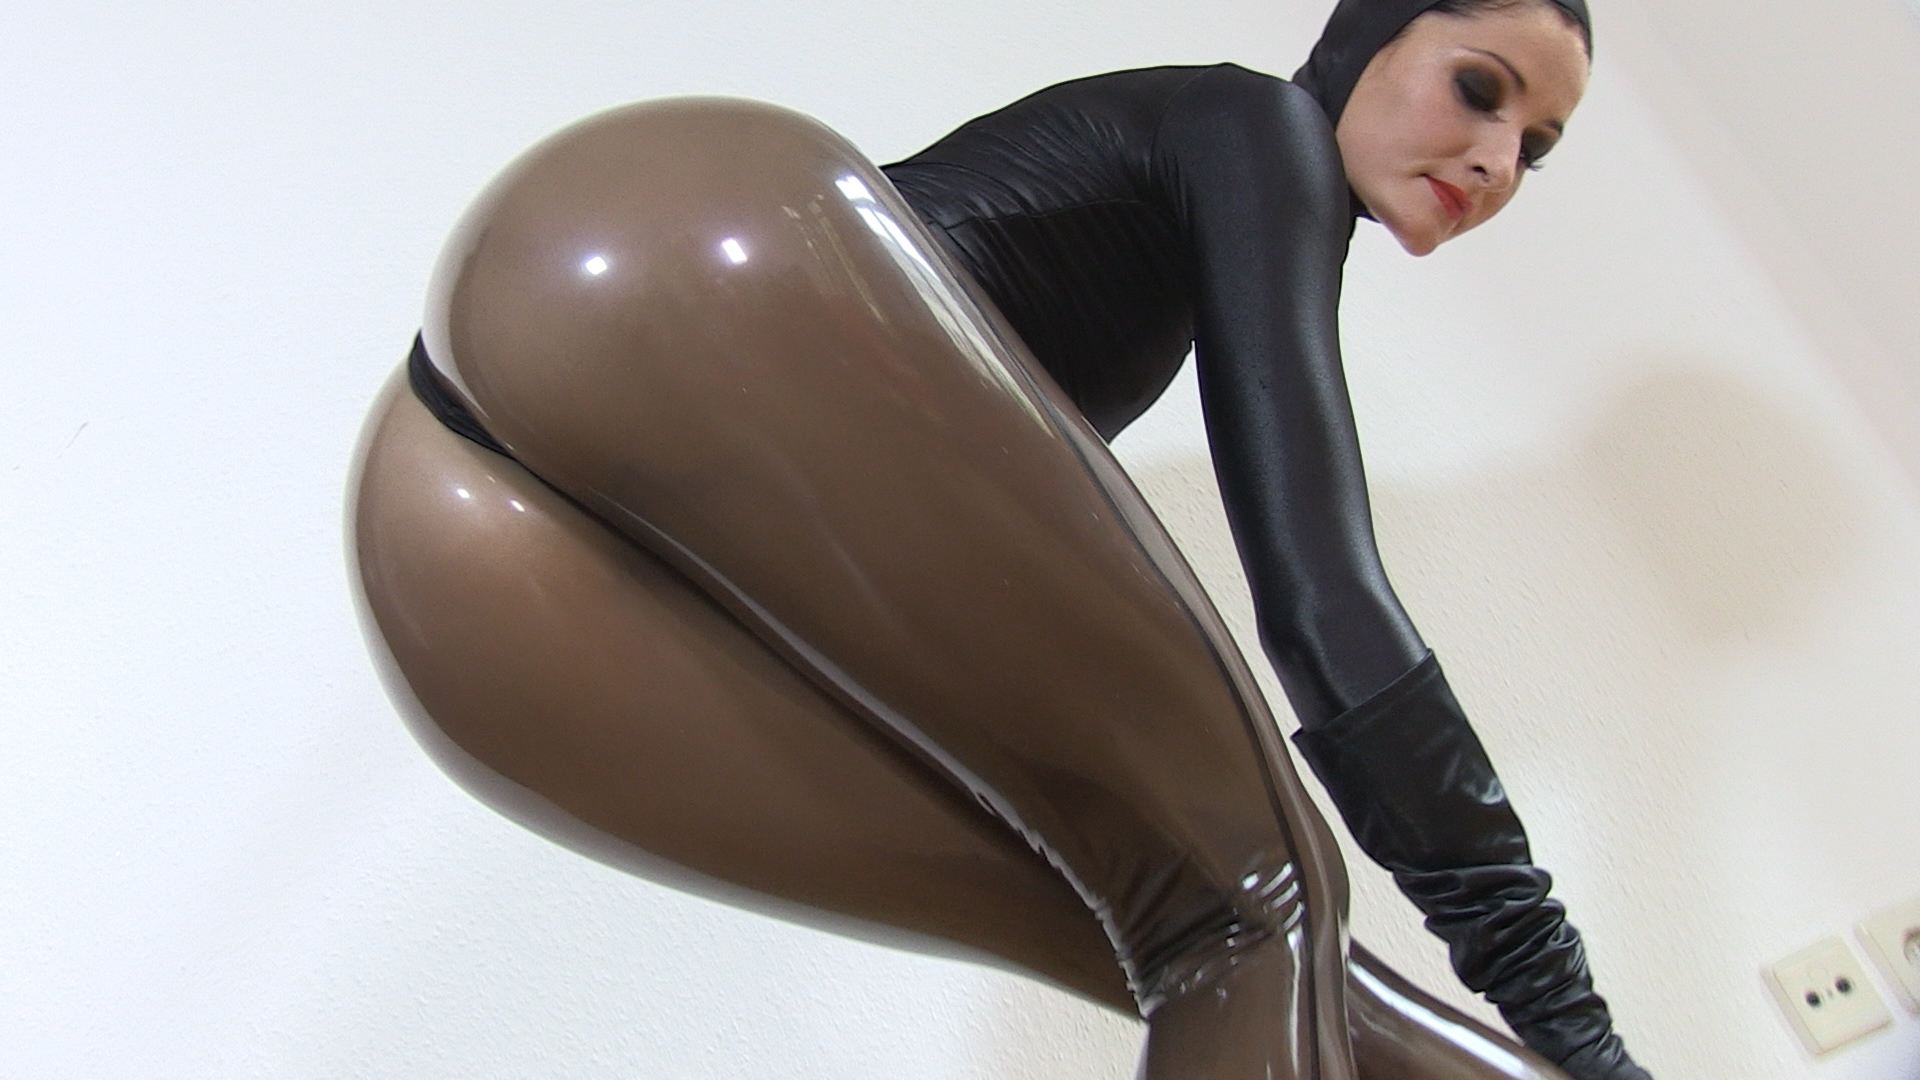 Lap Dance in Latex